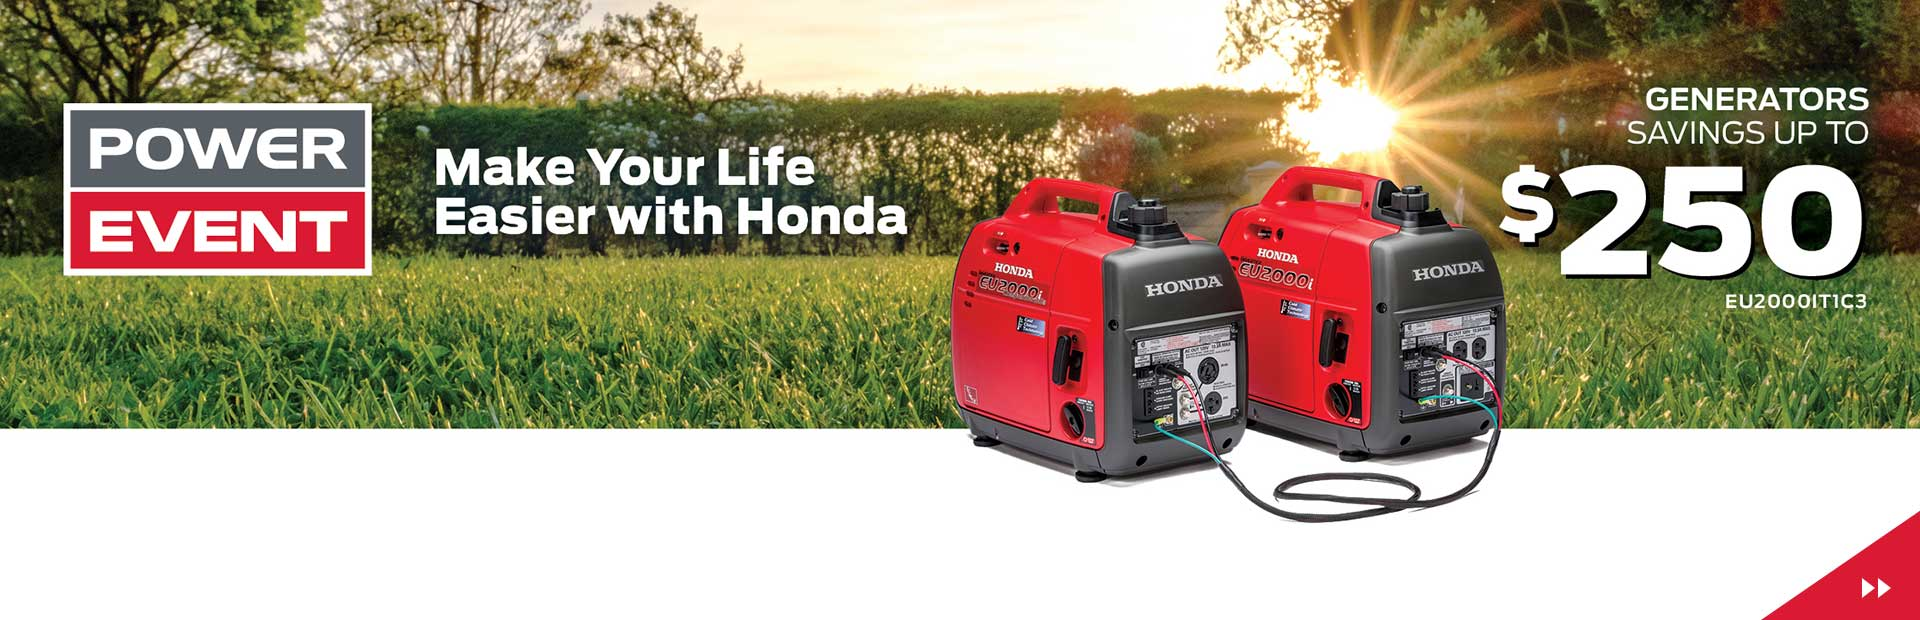 Honda Power Event is on Now! Save Up To $250 on Generators!